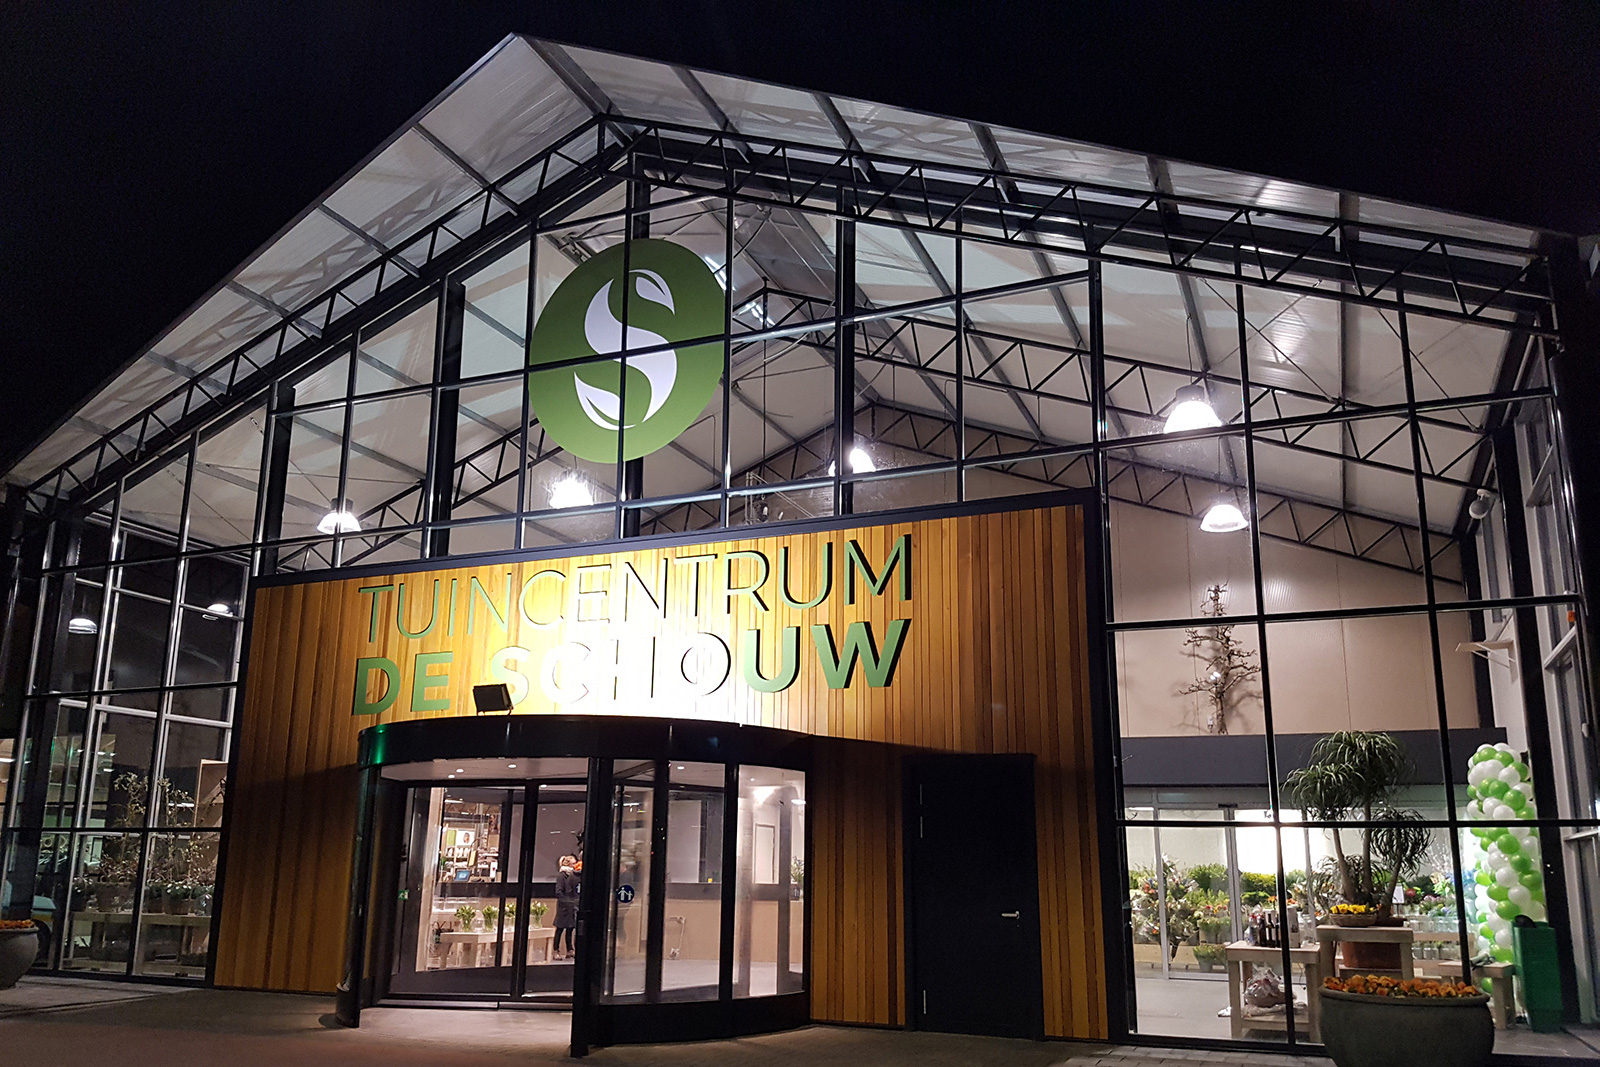 project de Schouw Houten tuincentrum